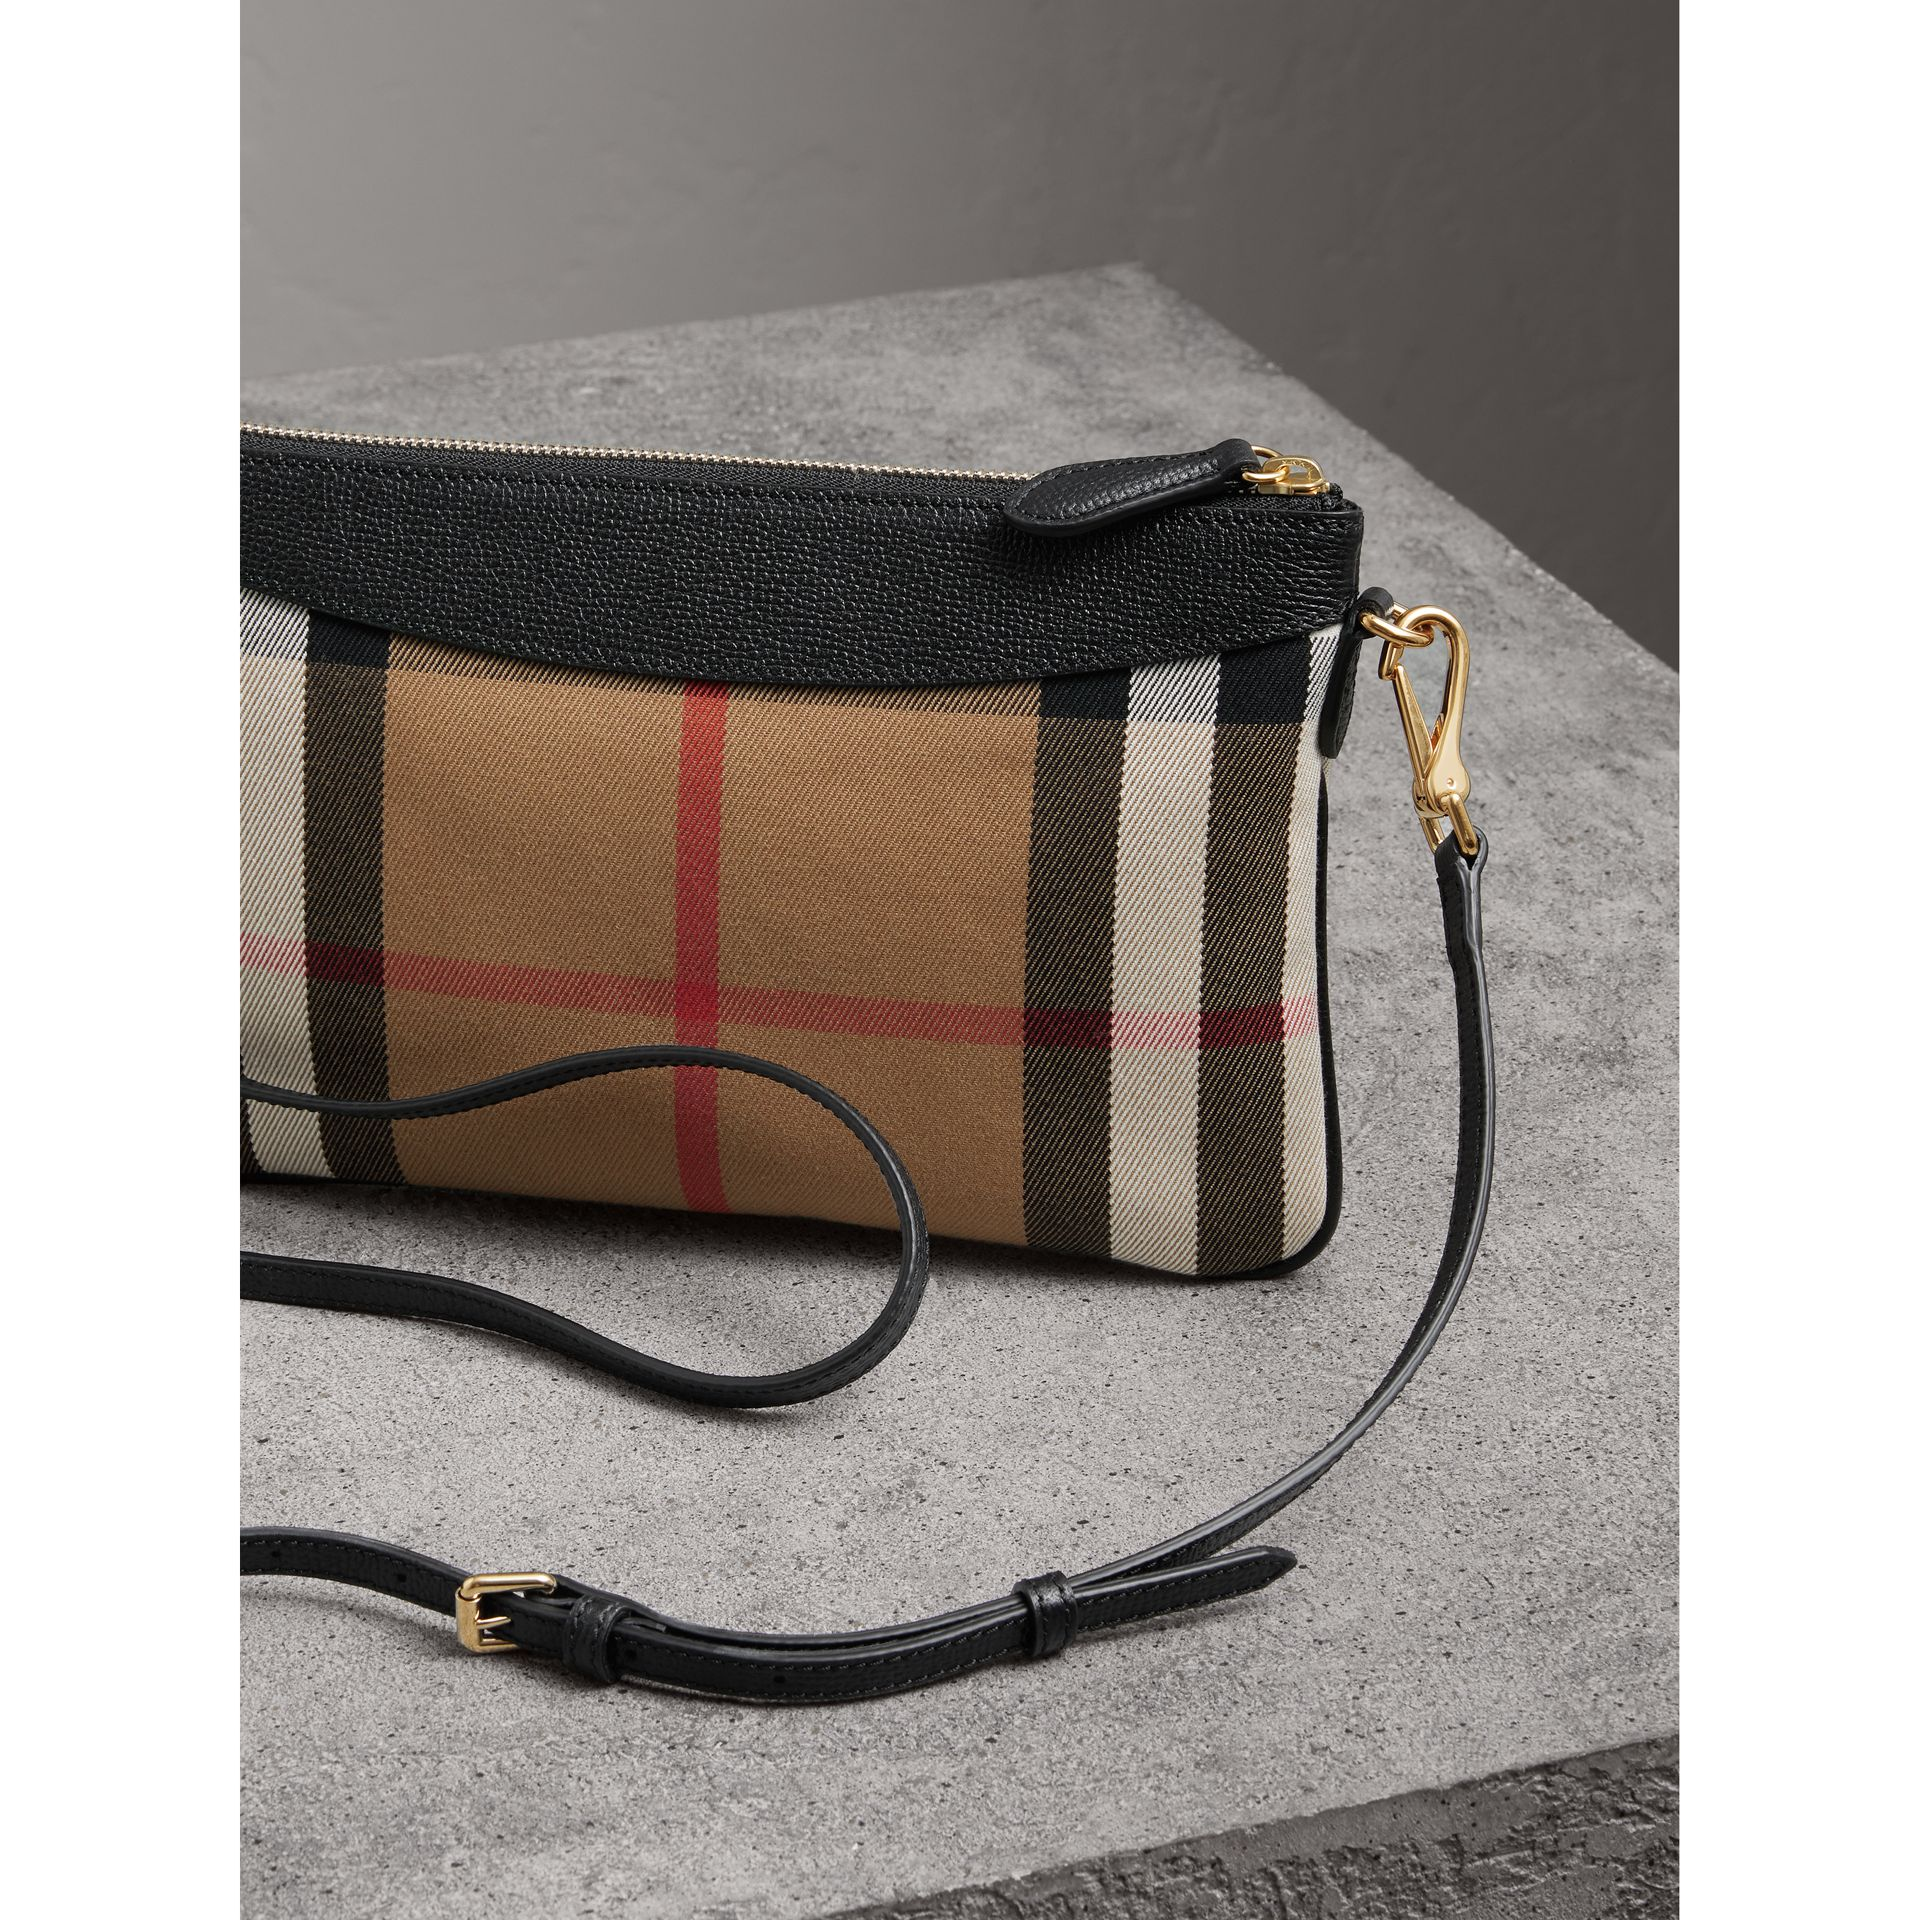 House Check and Leather Clutch Bag in Black - Women | Burberry Singapore - gallery image 3